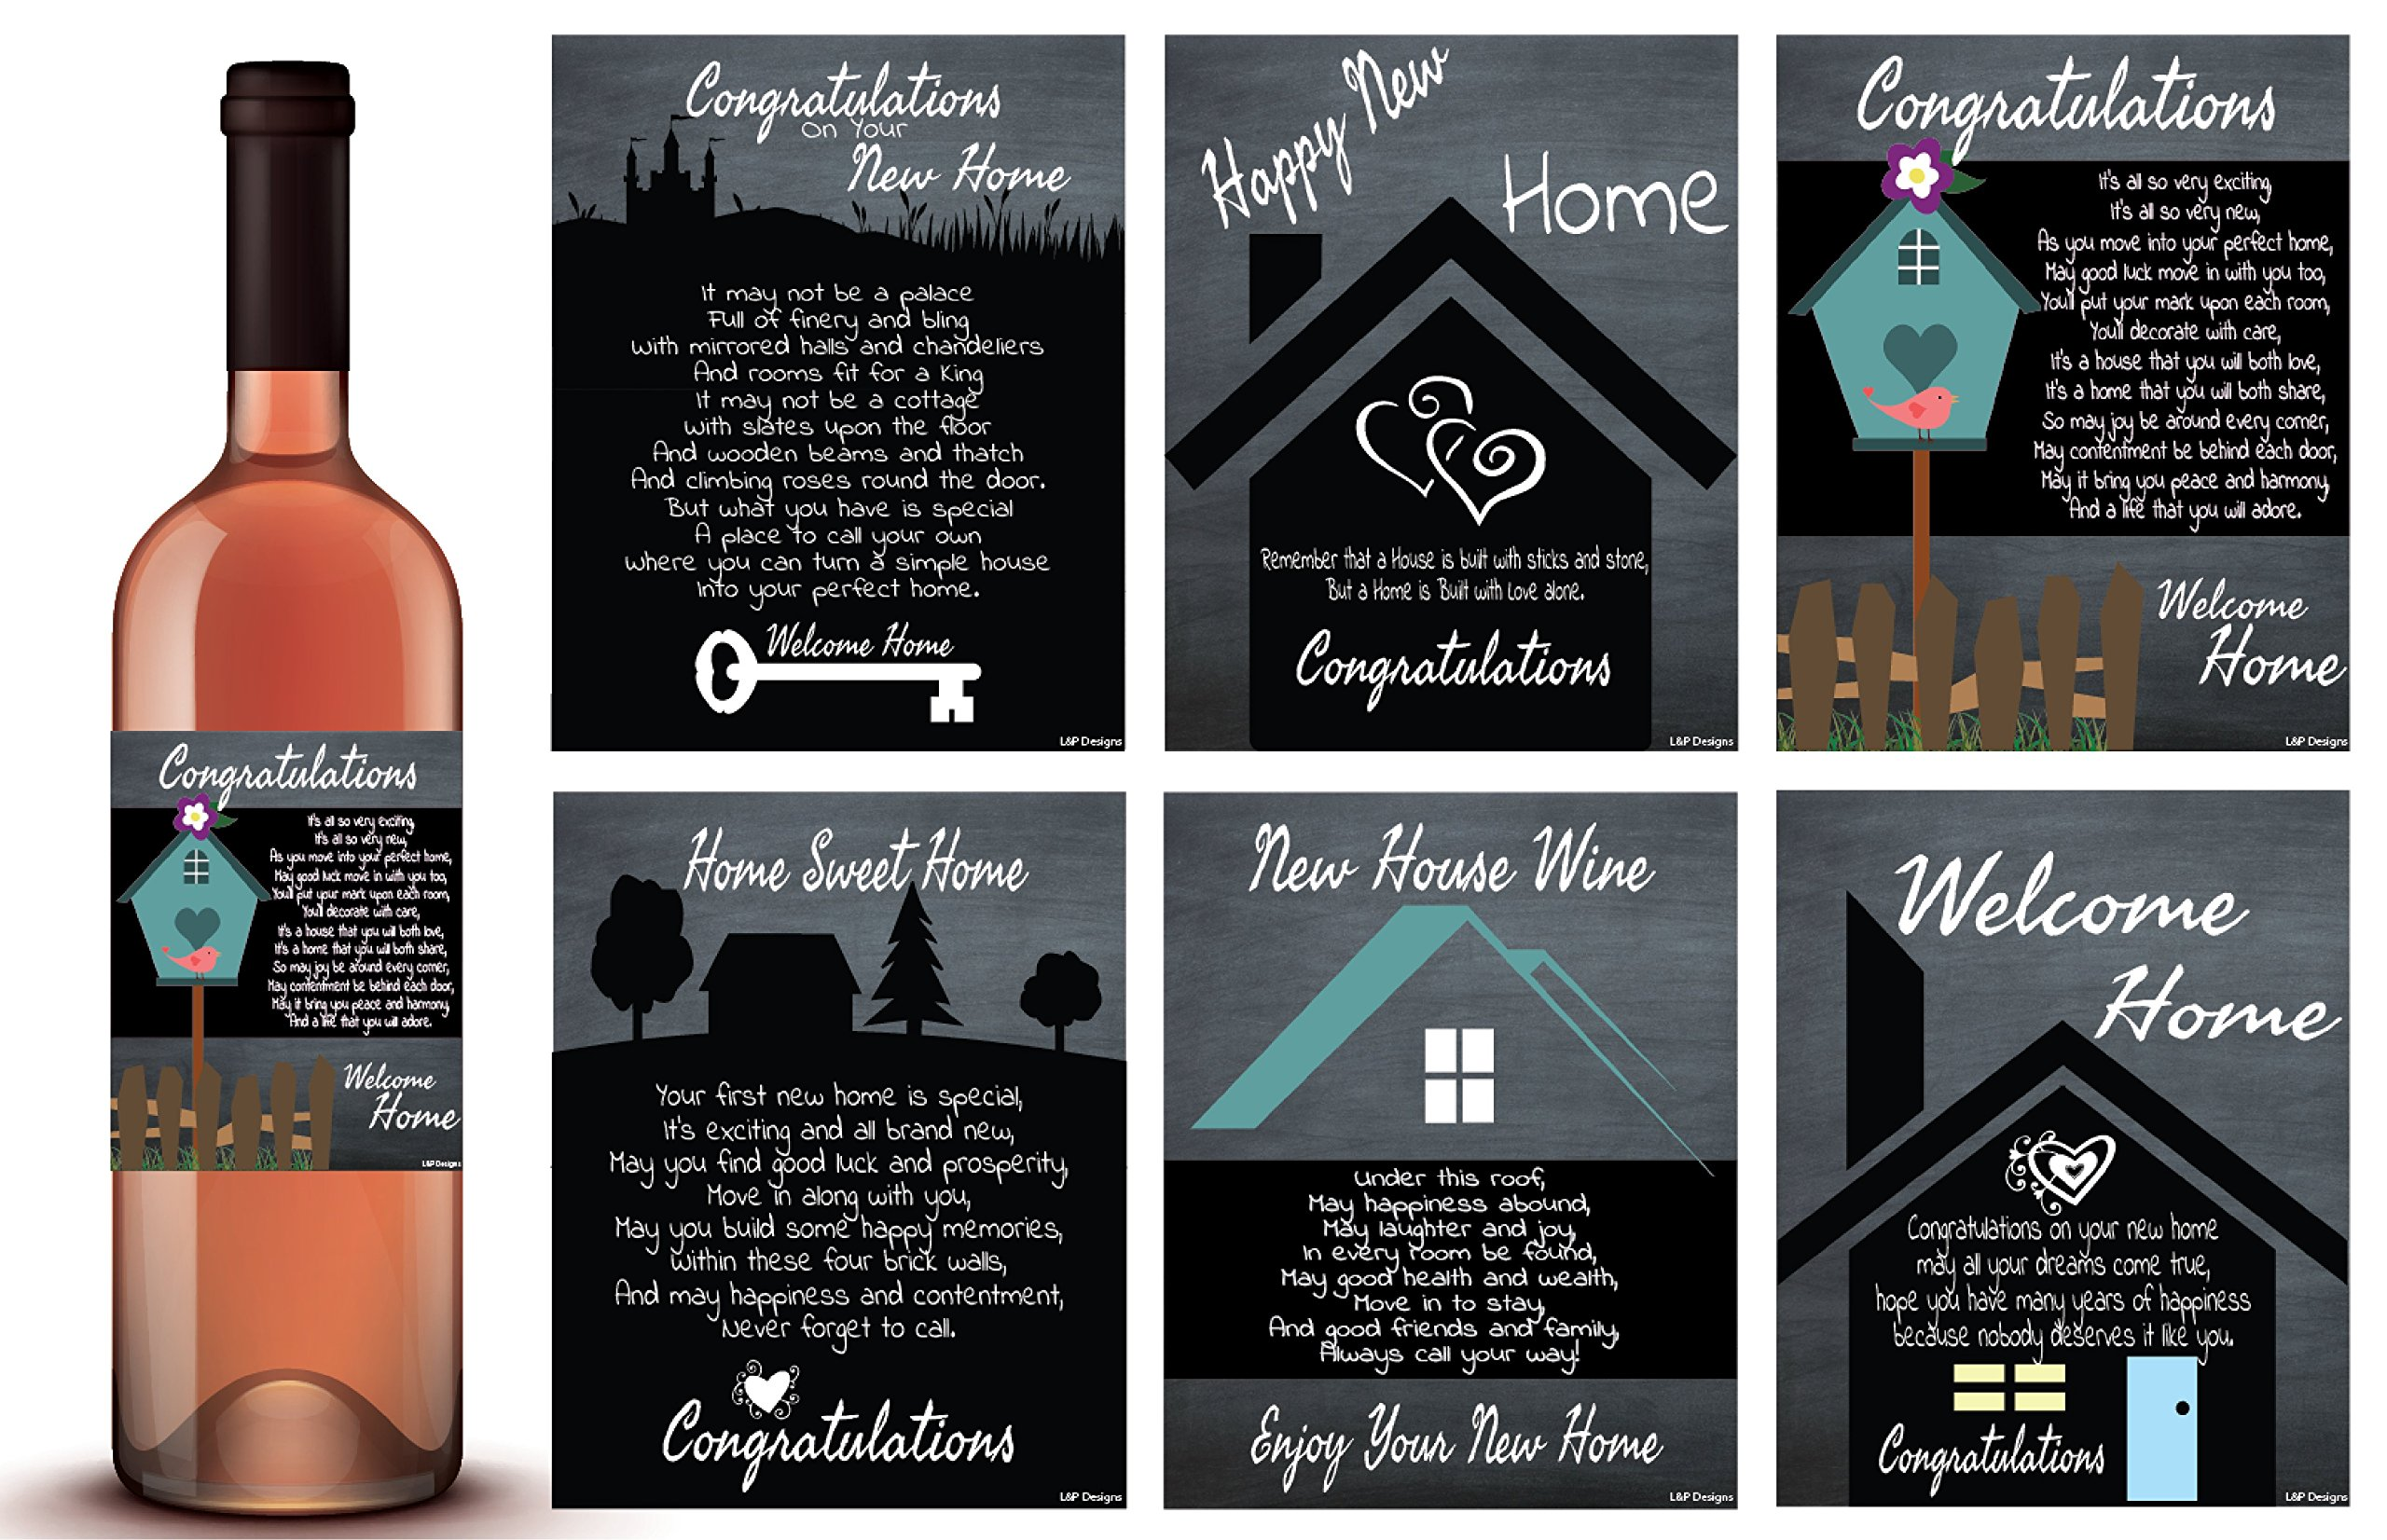 Housewarming Gifts Rustic Wine Labels set, Housewarming Gifts For New Home, New Home Milestones Wine Bottle Labels, Unique Real Estate Housewarming Presents, Congratulations Gifts, New Neighbor Gifts